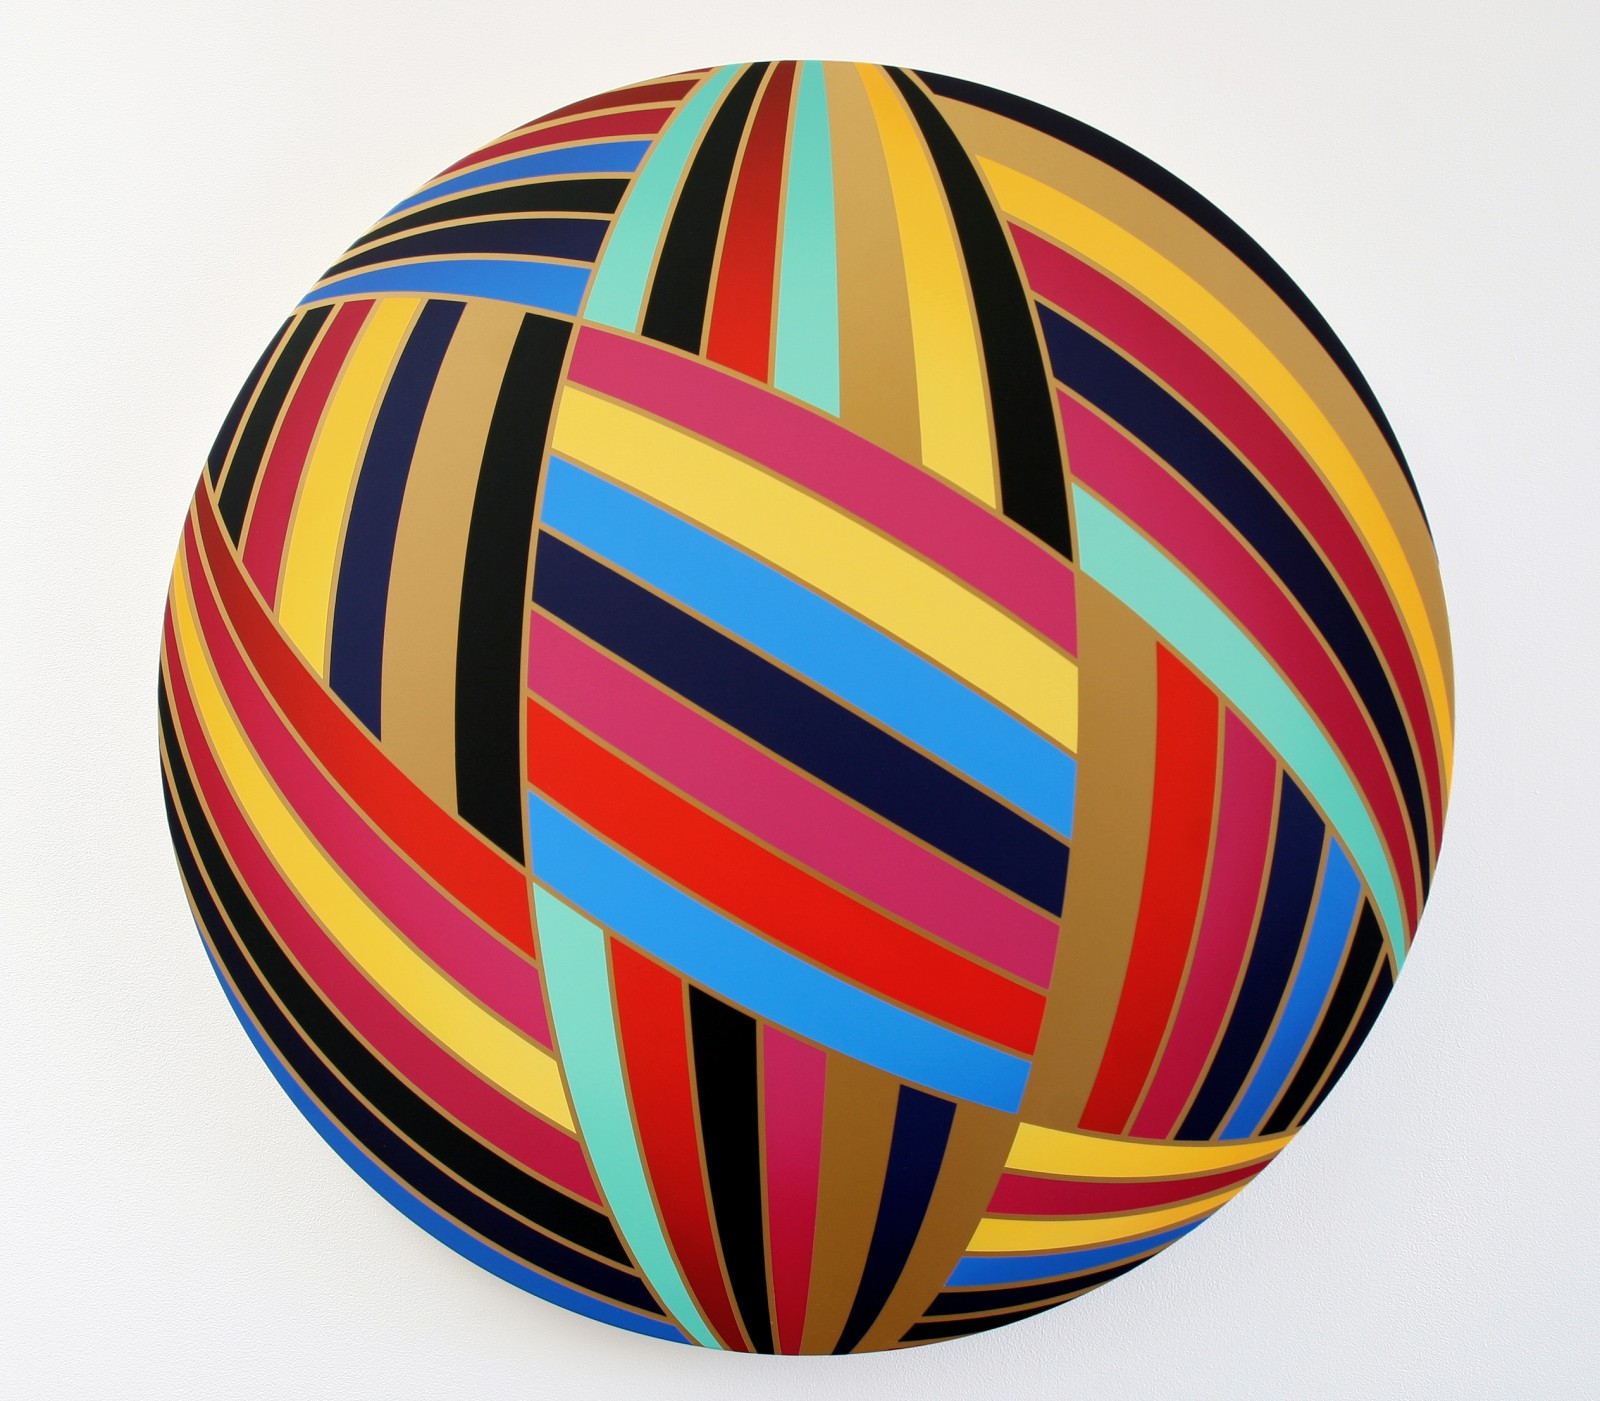 Thomas Burke, Romeo, 2012, acrylic on canvas, 33 inches diameter